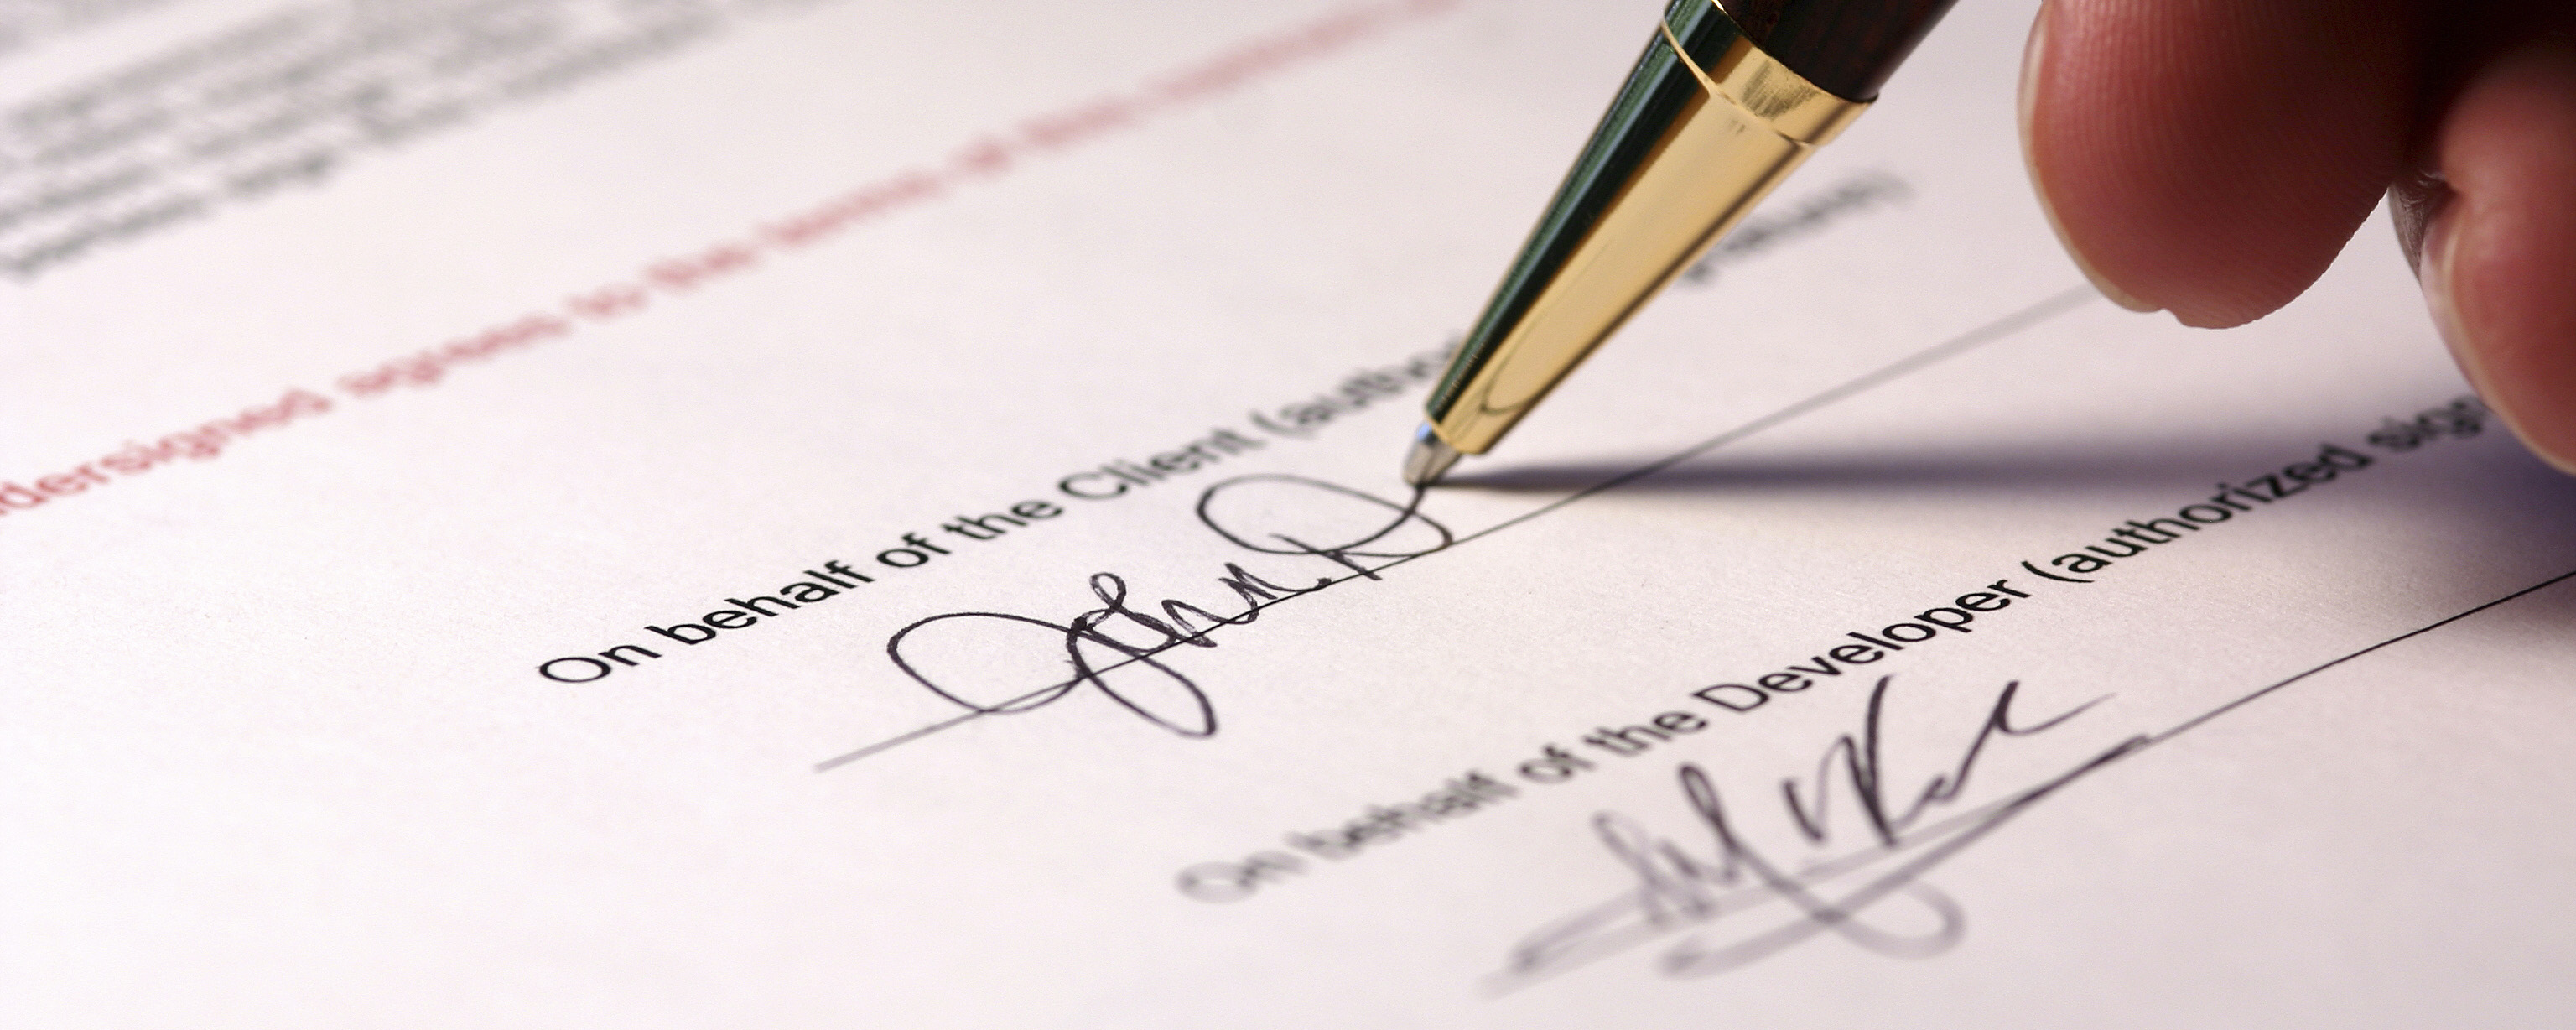 Handwriting at work could be extinct for future generations